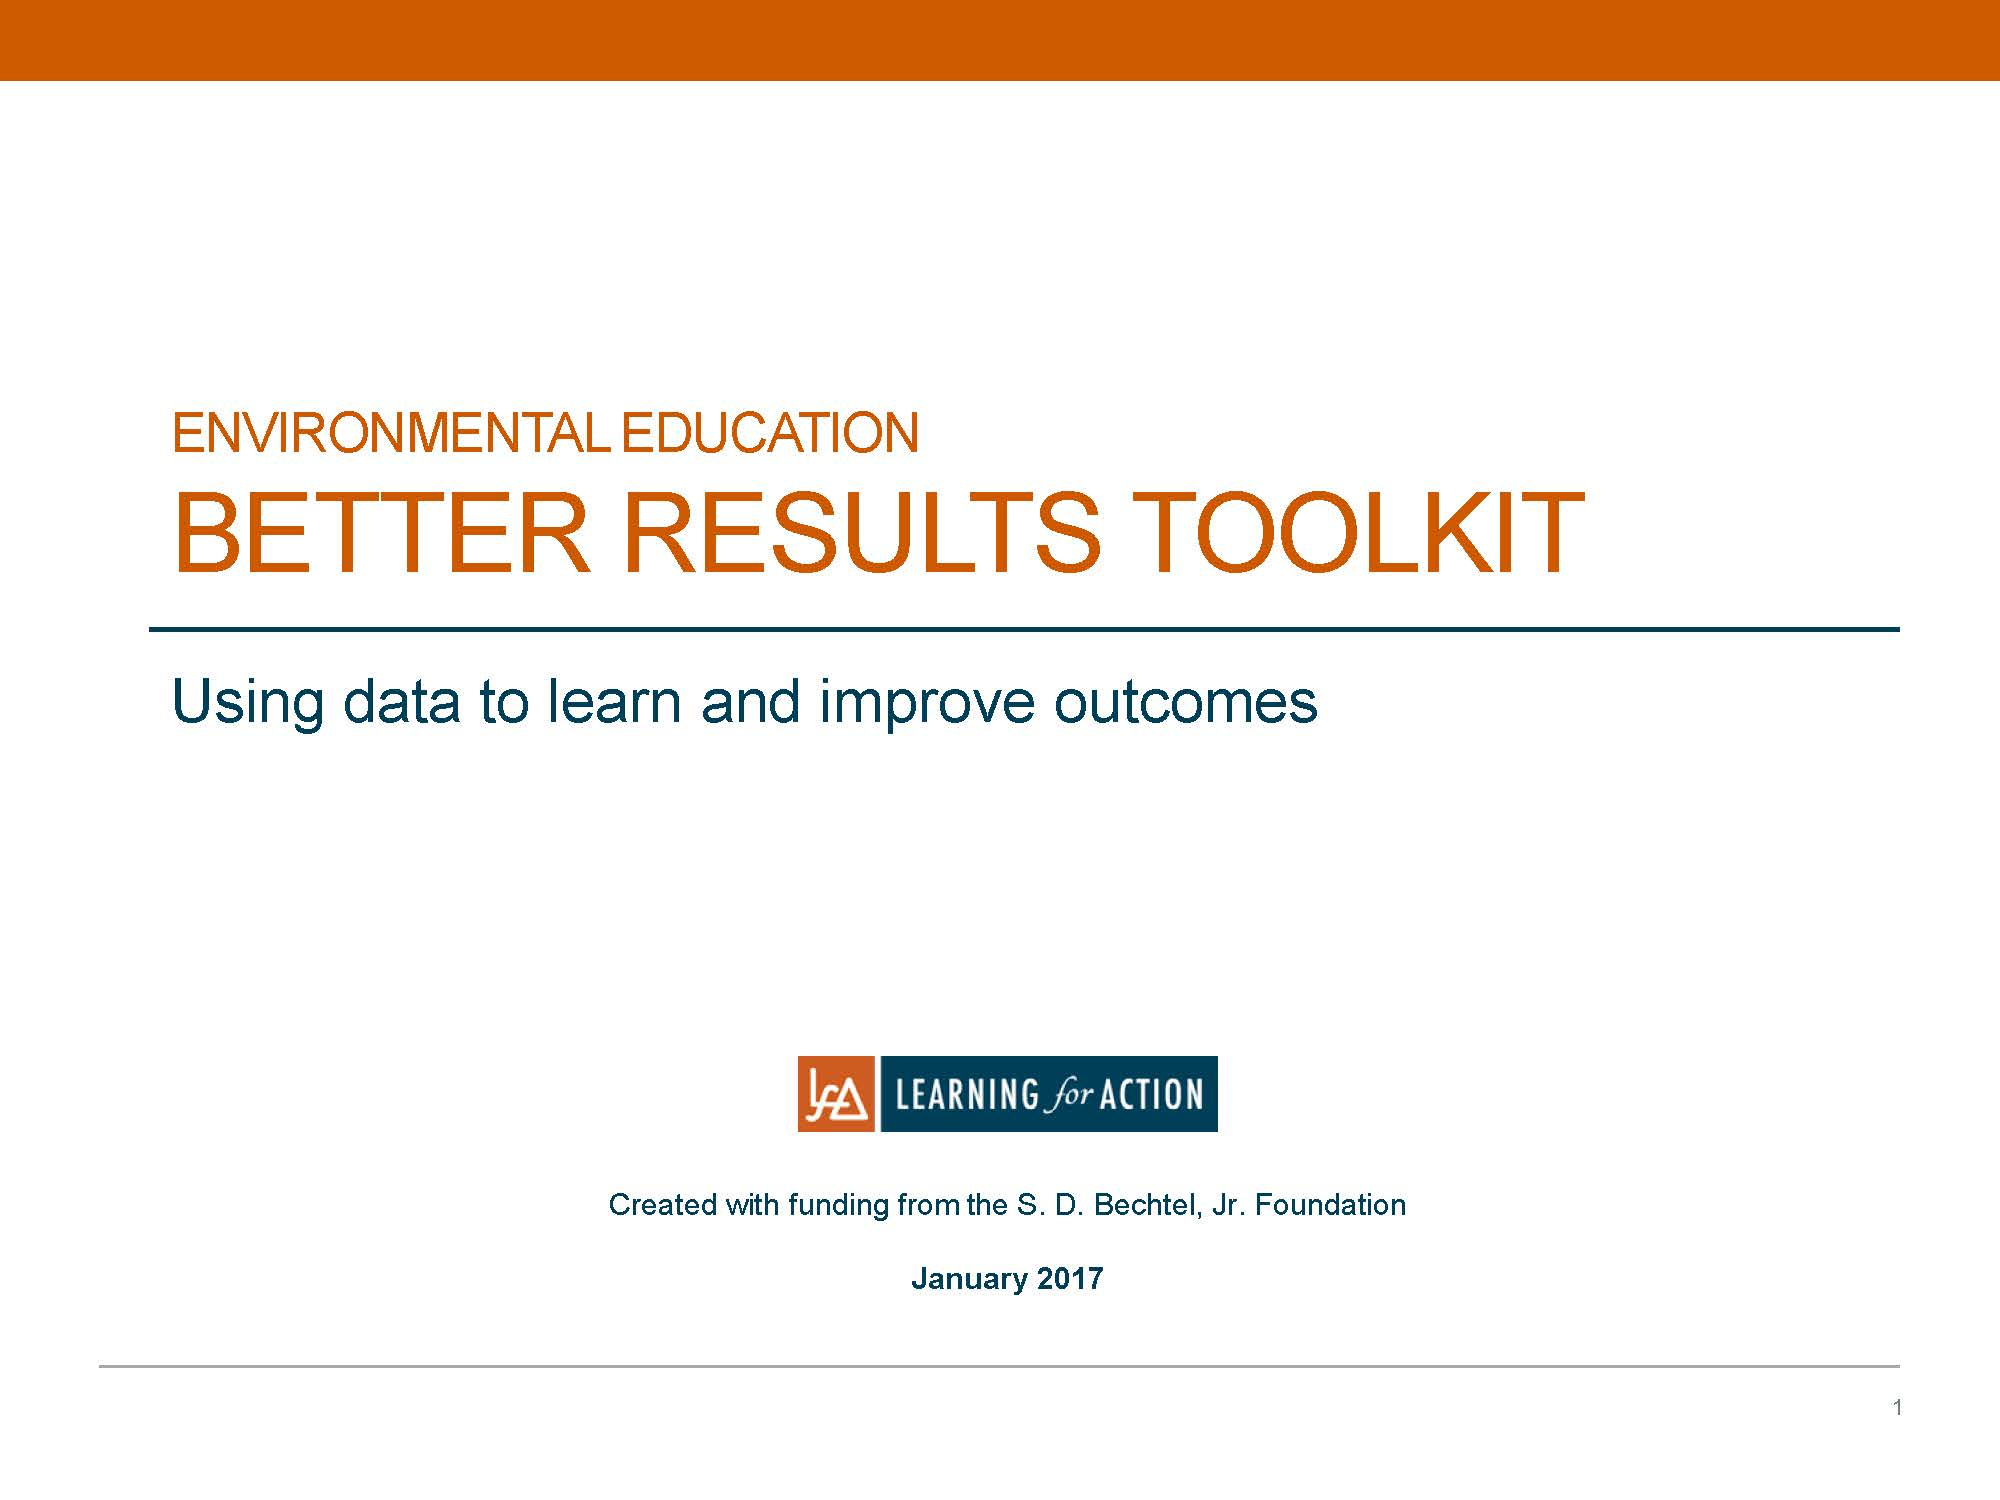 Better Results Toolkit.jpg